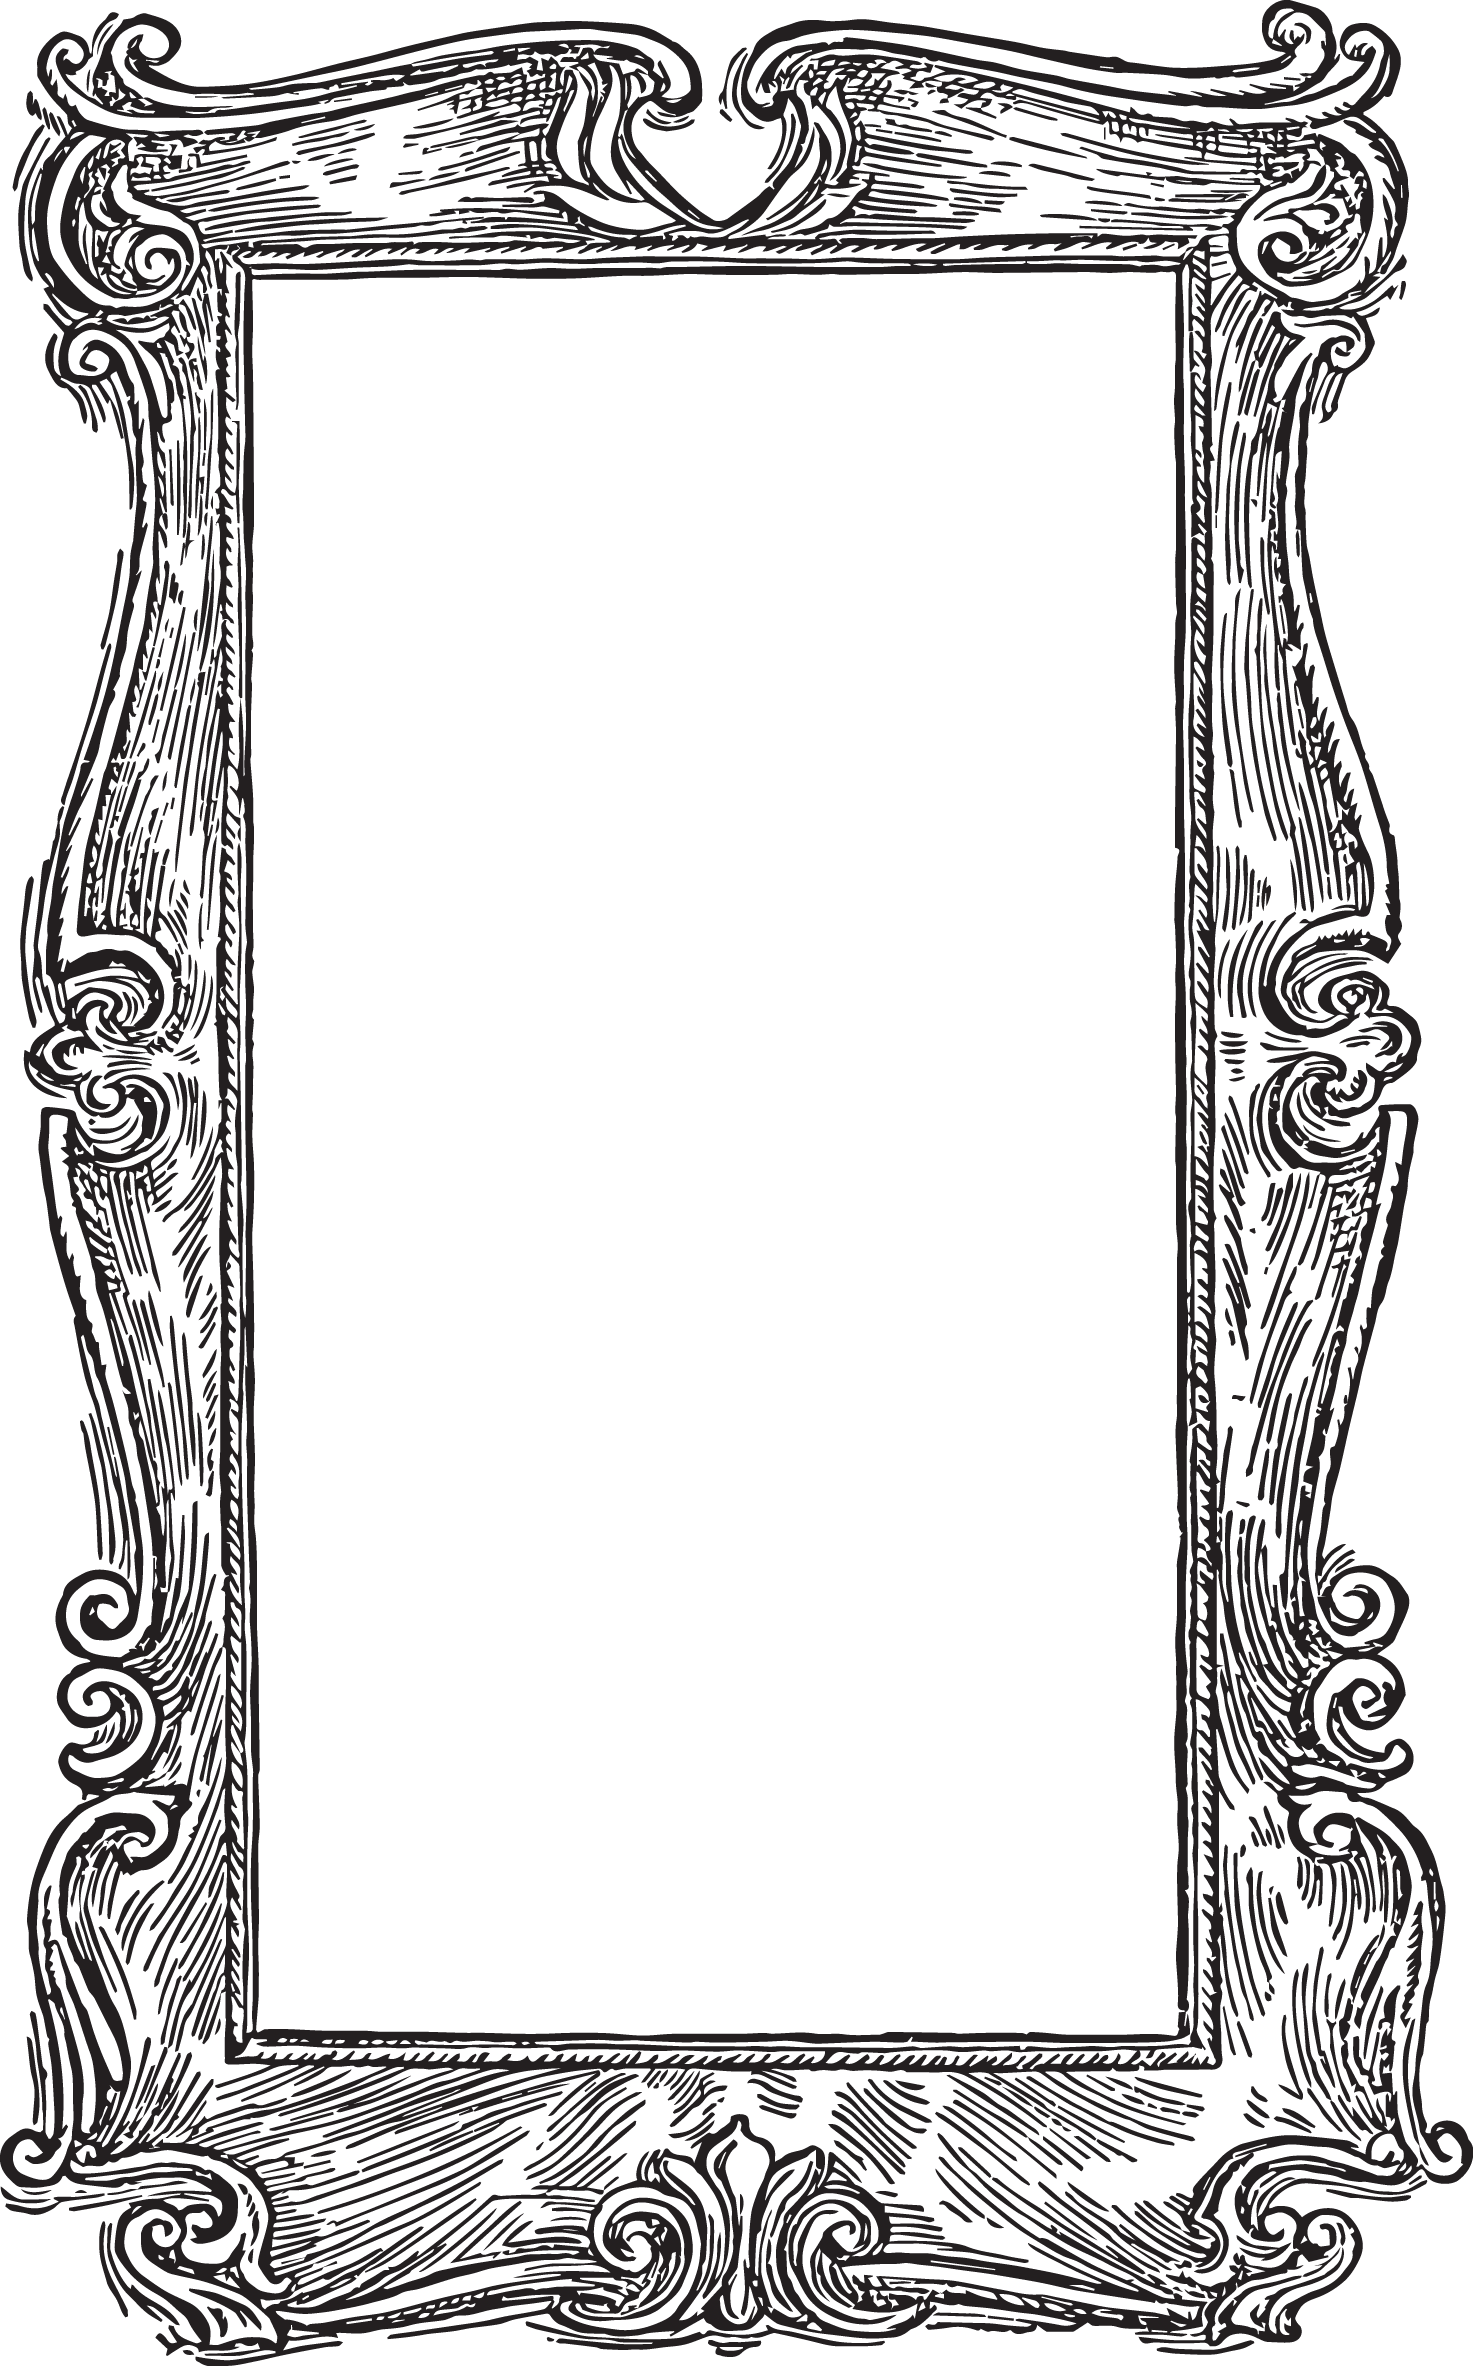 Fairy clipart borders. Vintage oval frames vector